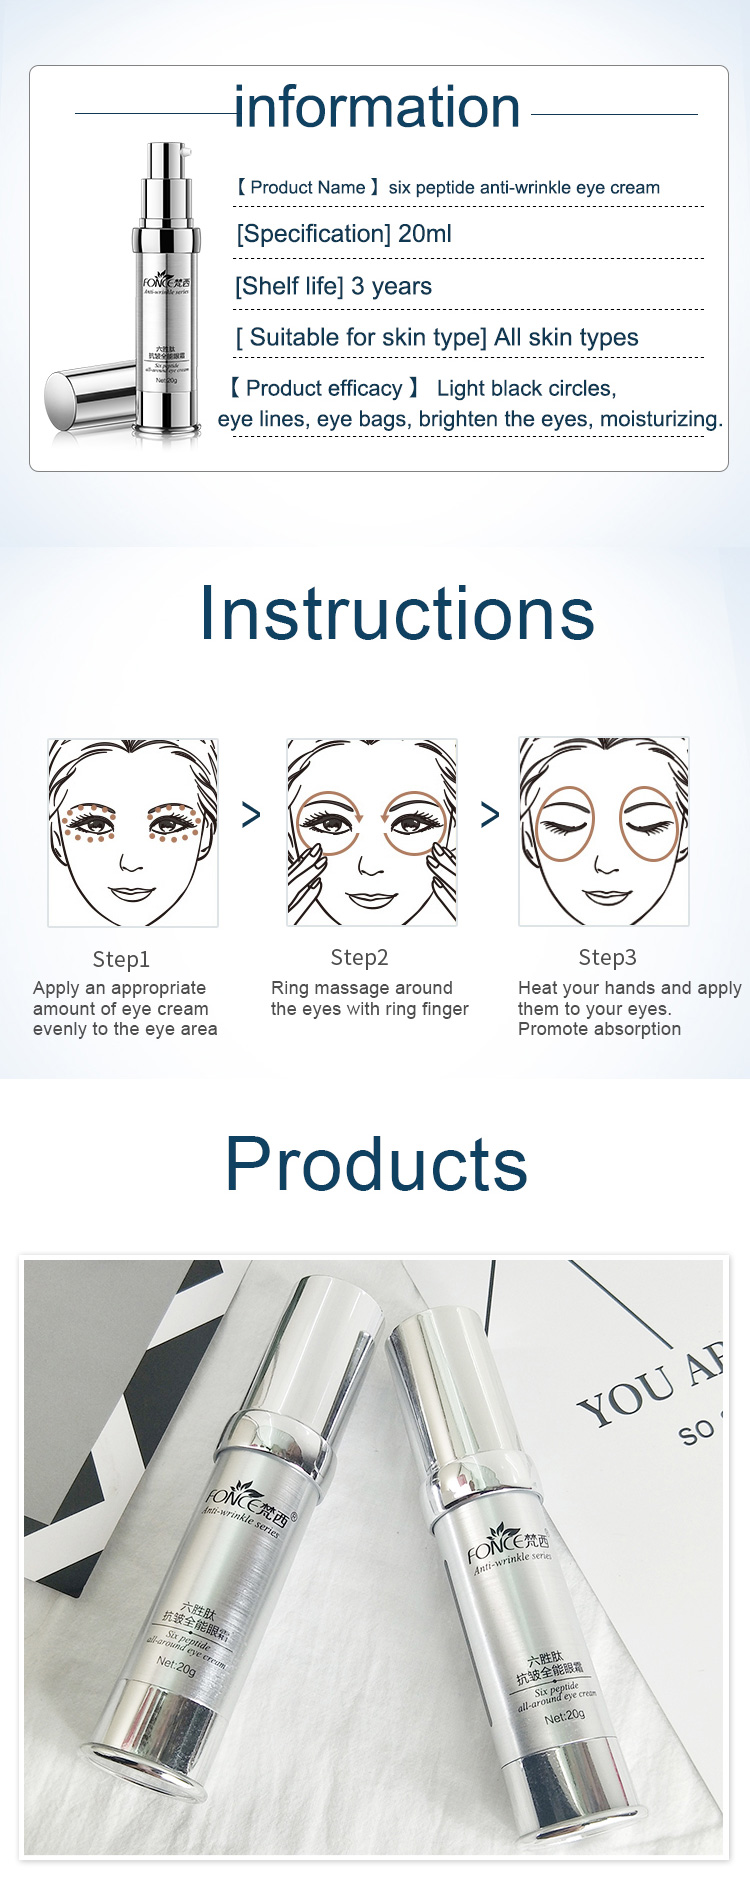 Korean-Skin-Care-Anti-Wrinkle-Eye-Cream-Six-Peptides-Anti-Aging-Remover-Dark-Circle-Firming-Moisturizing-eye-patches-Mask-20g_11